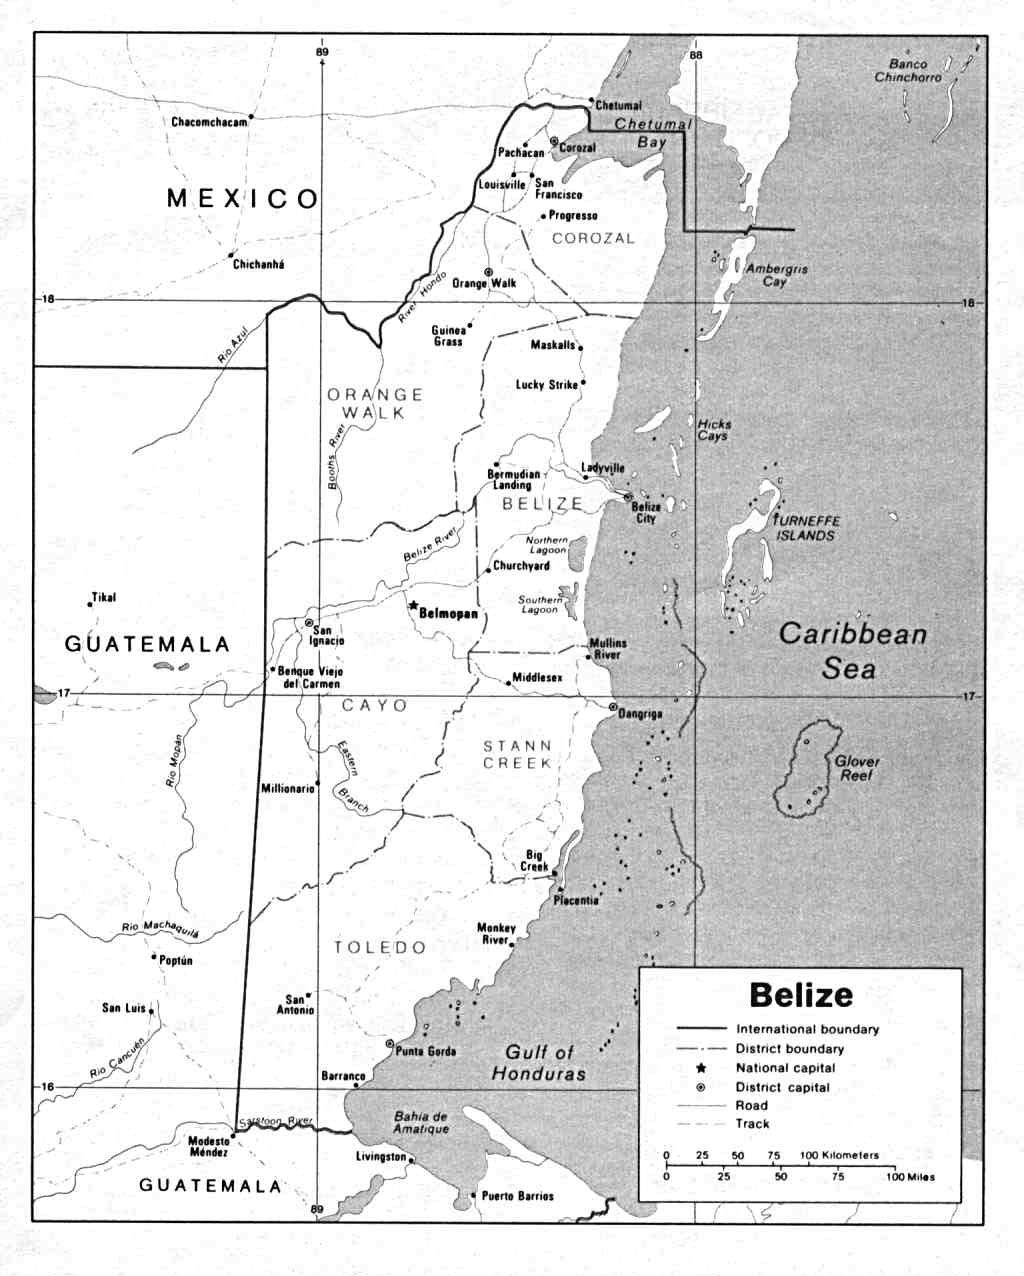 Belize History And General Information Extensive Version